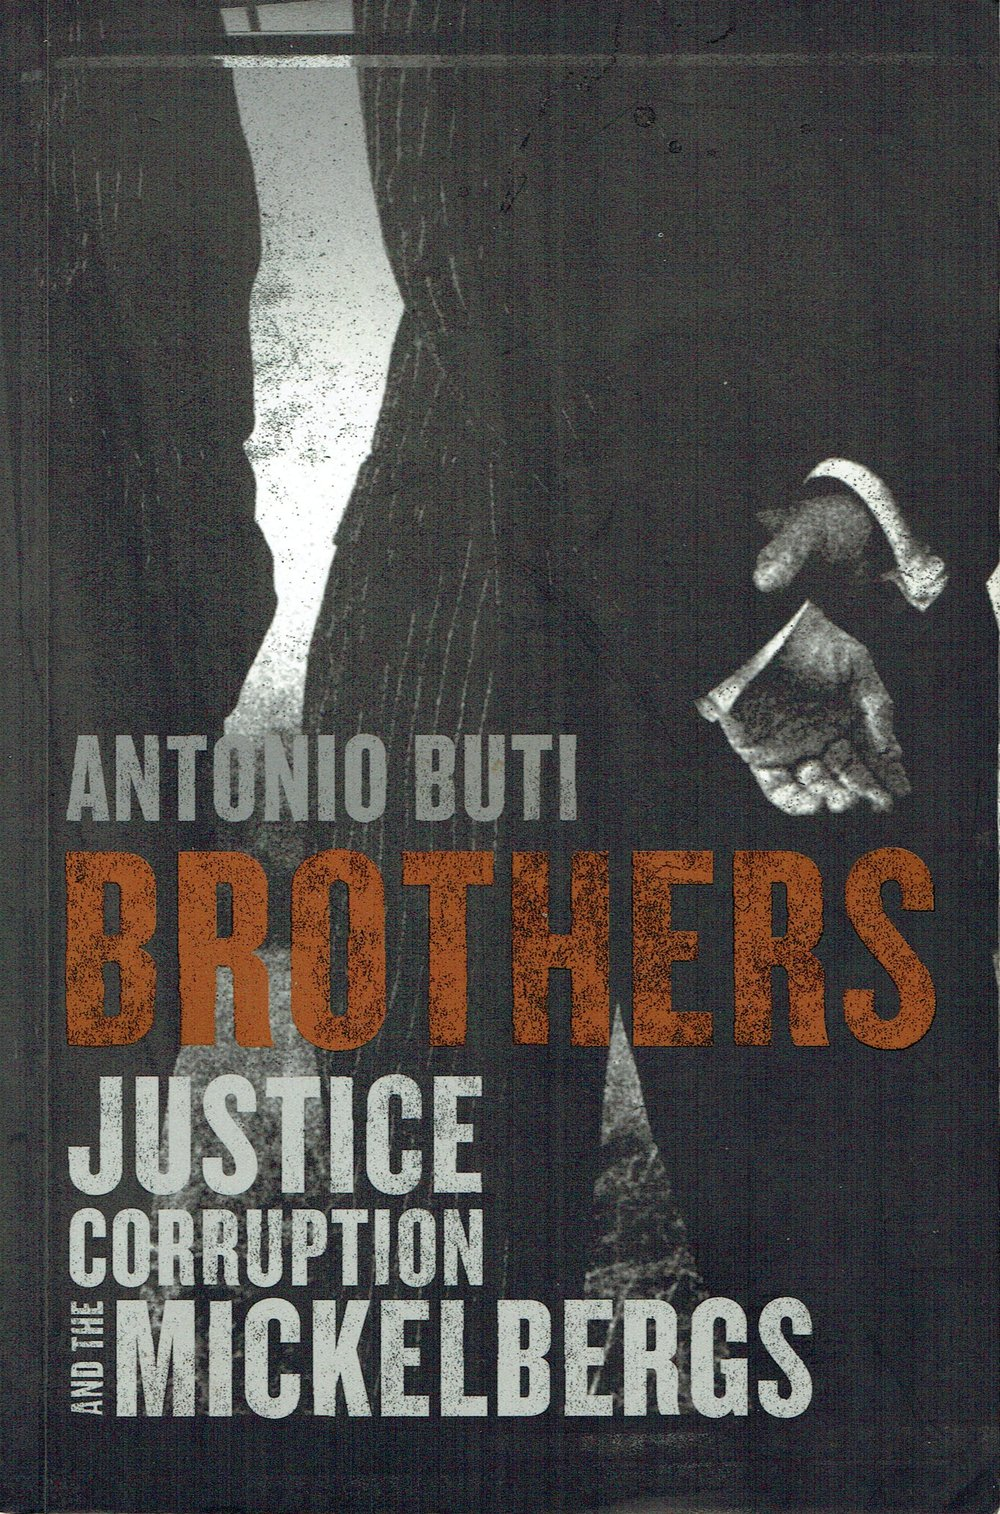 Brothers : Justice, corruption and the Mickelbergs Antonio Buti